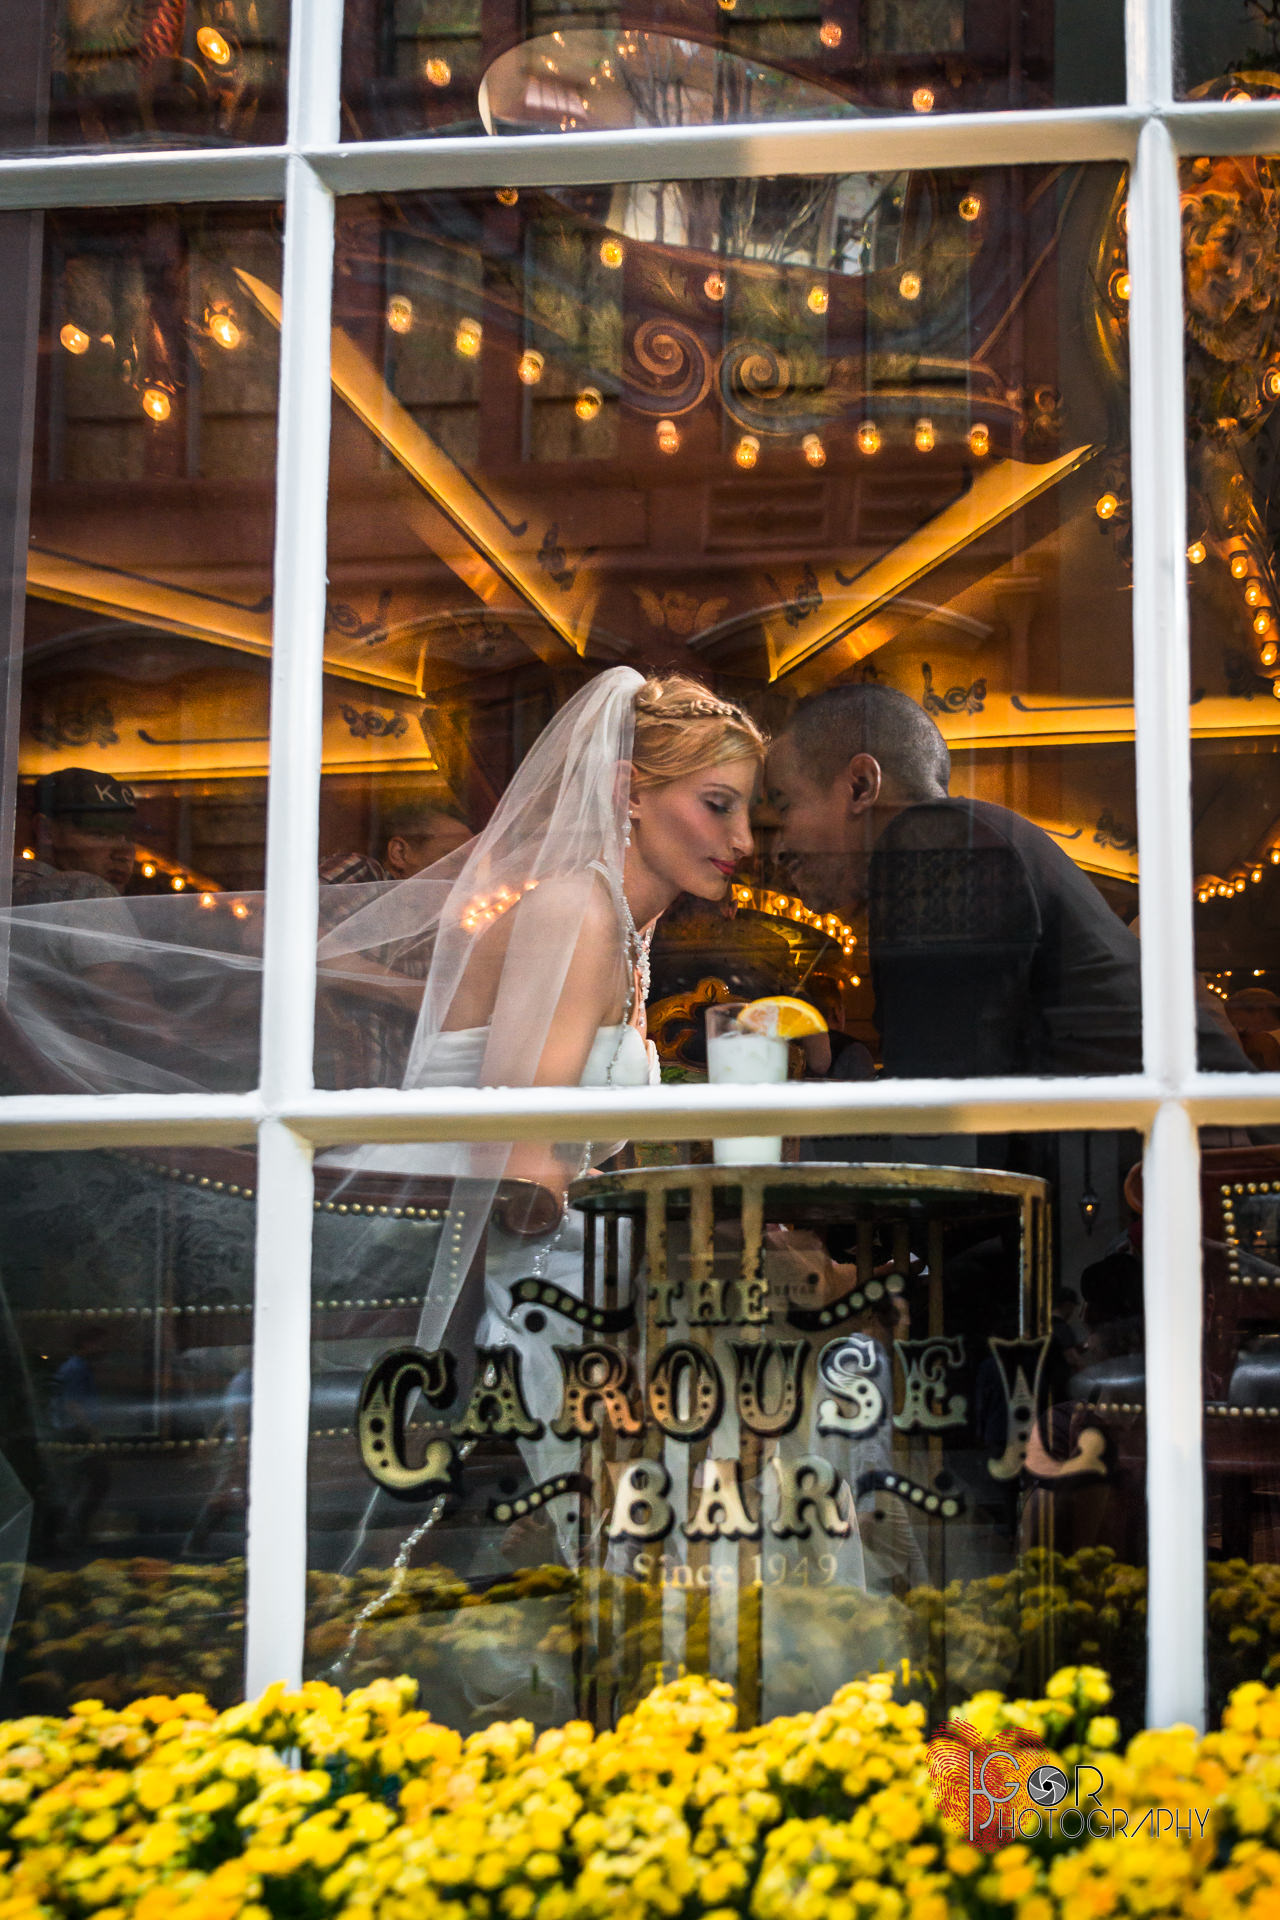 Wedding couple at the Iconic Carousel Bar in NOLA